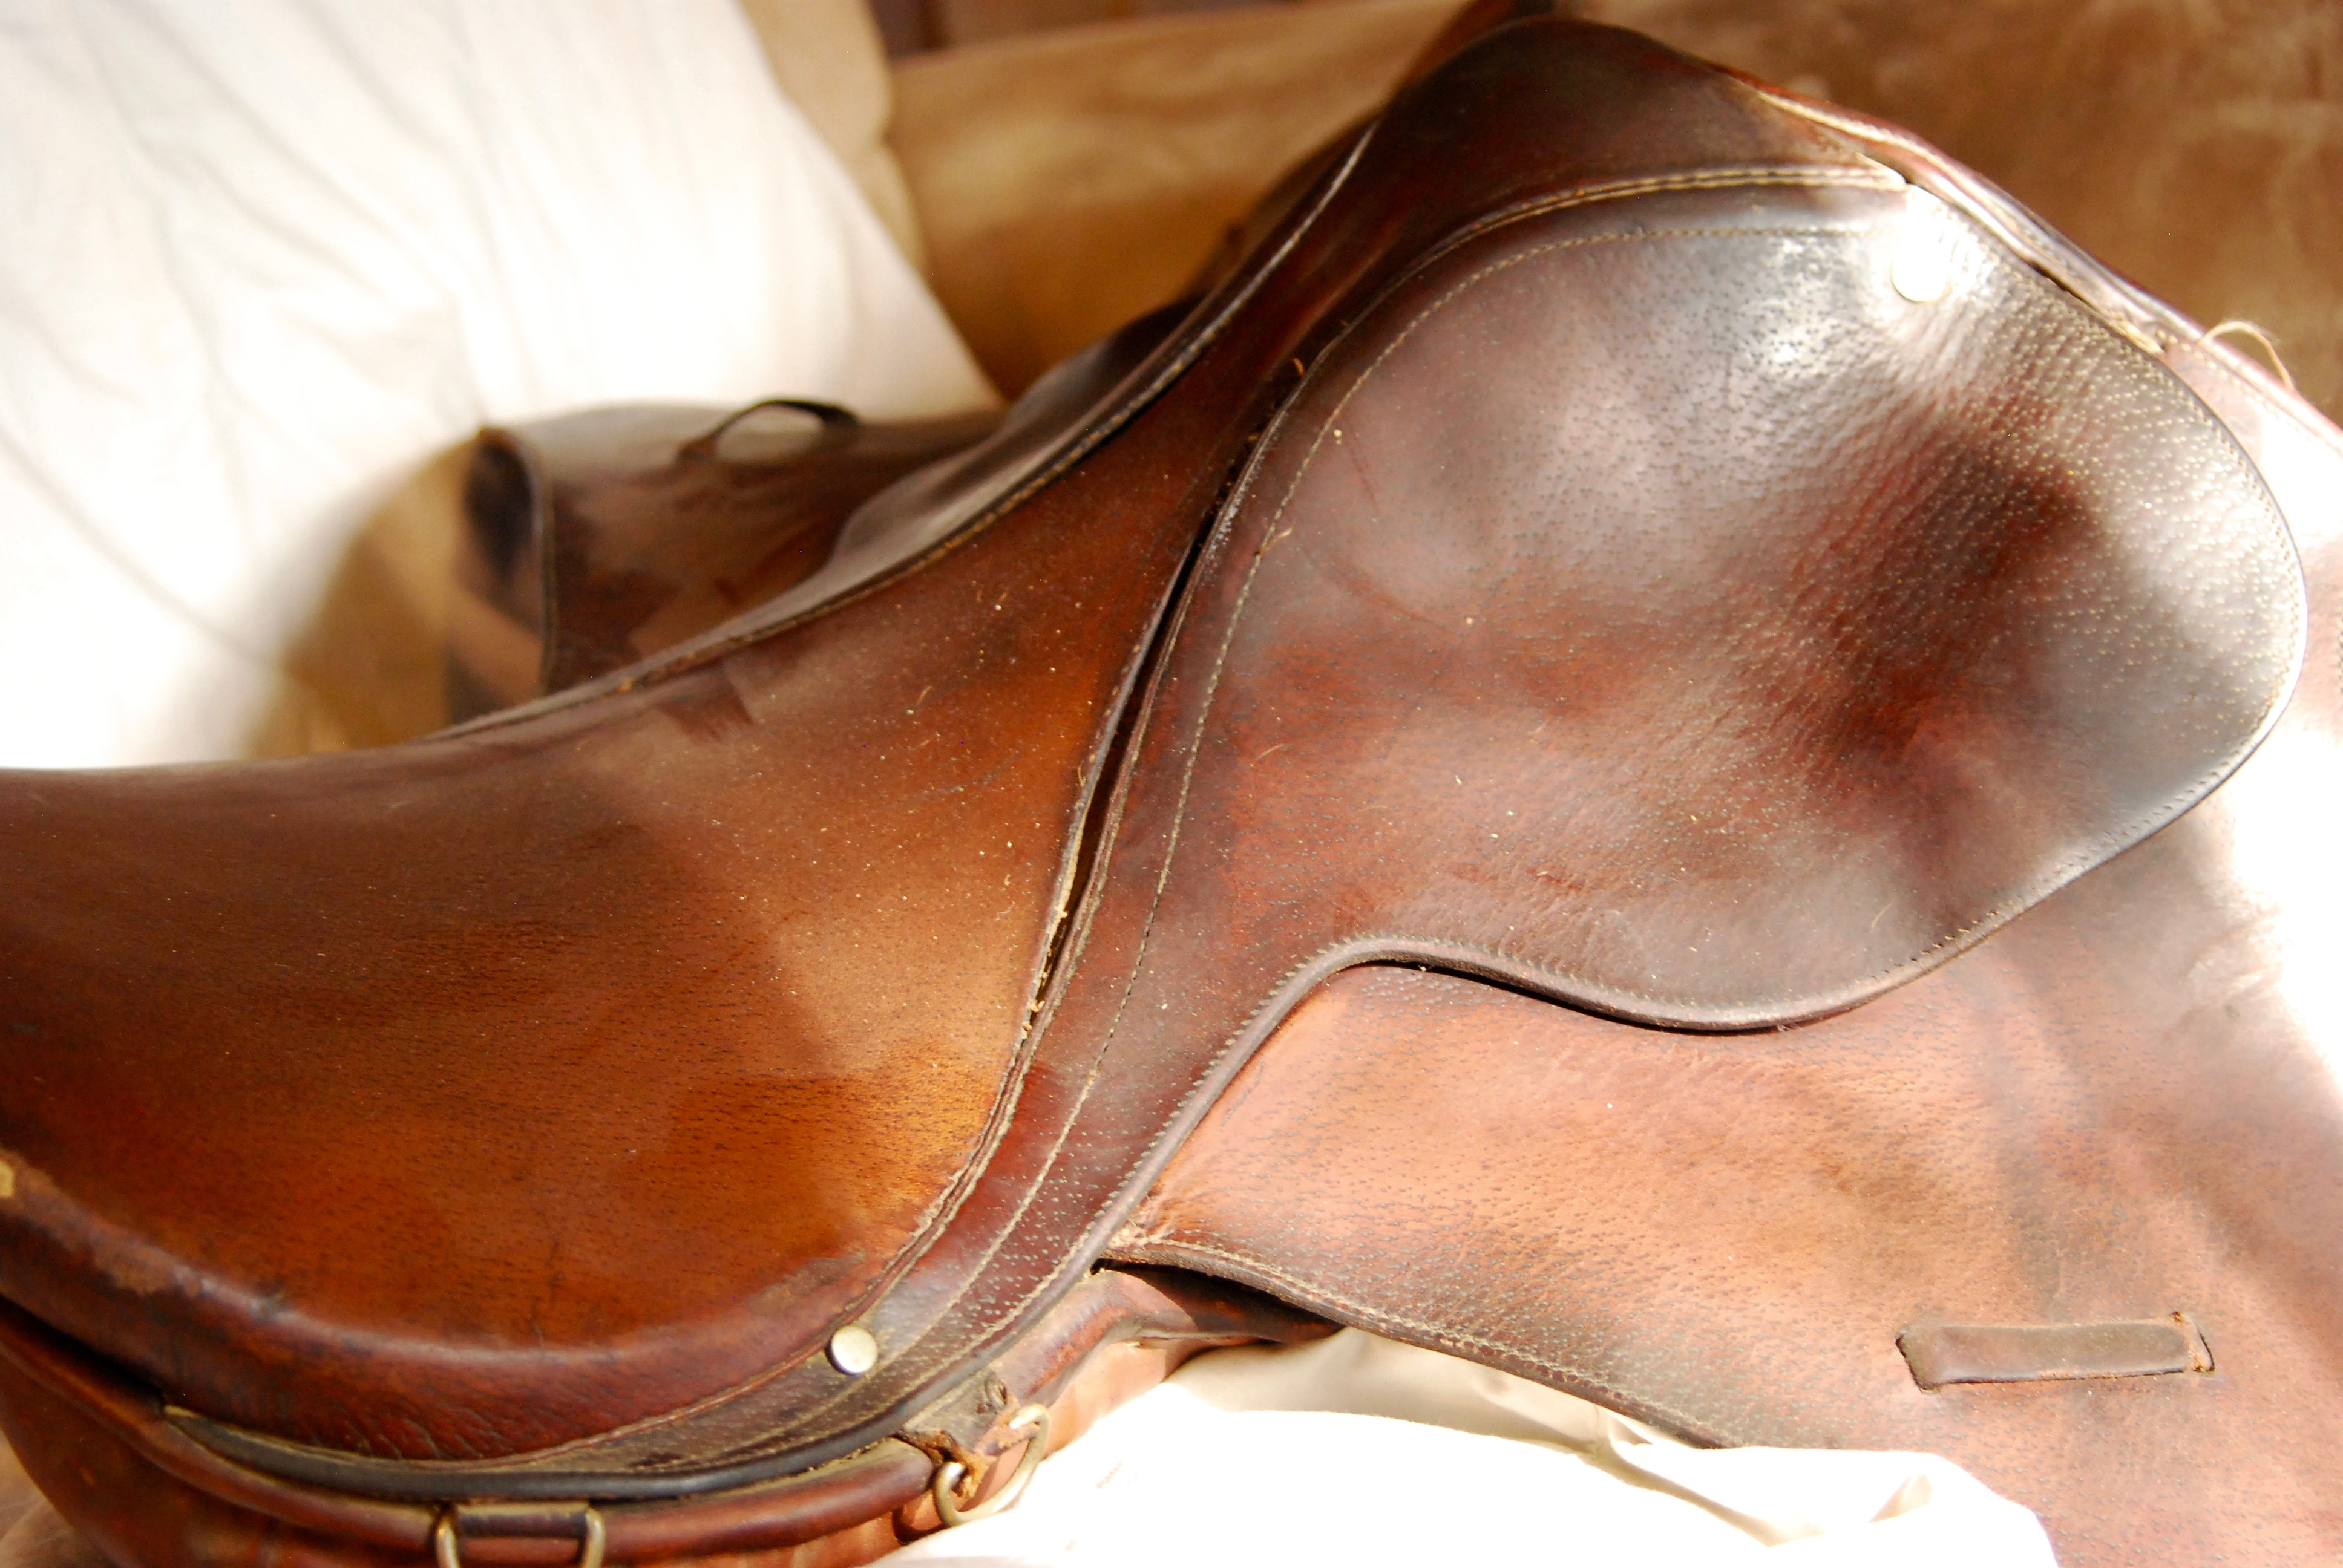 Clean saddle